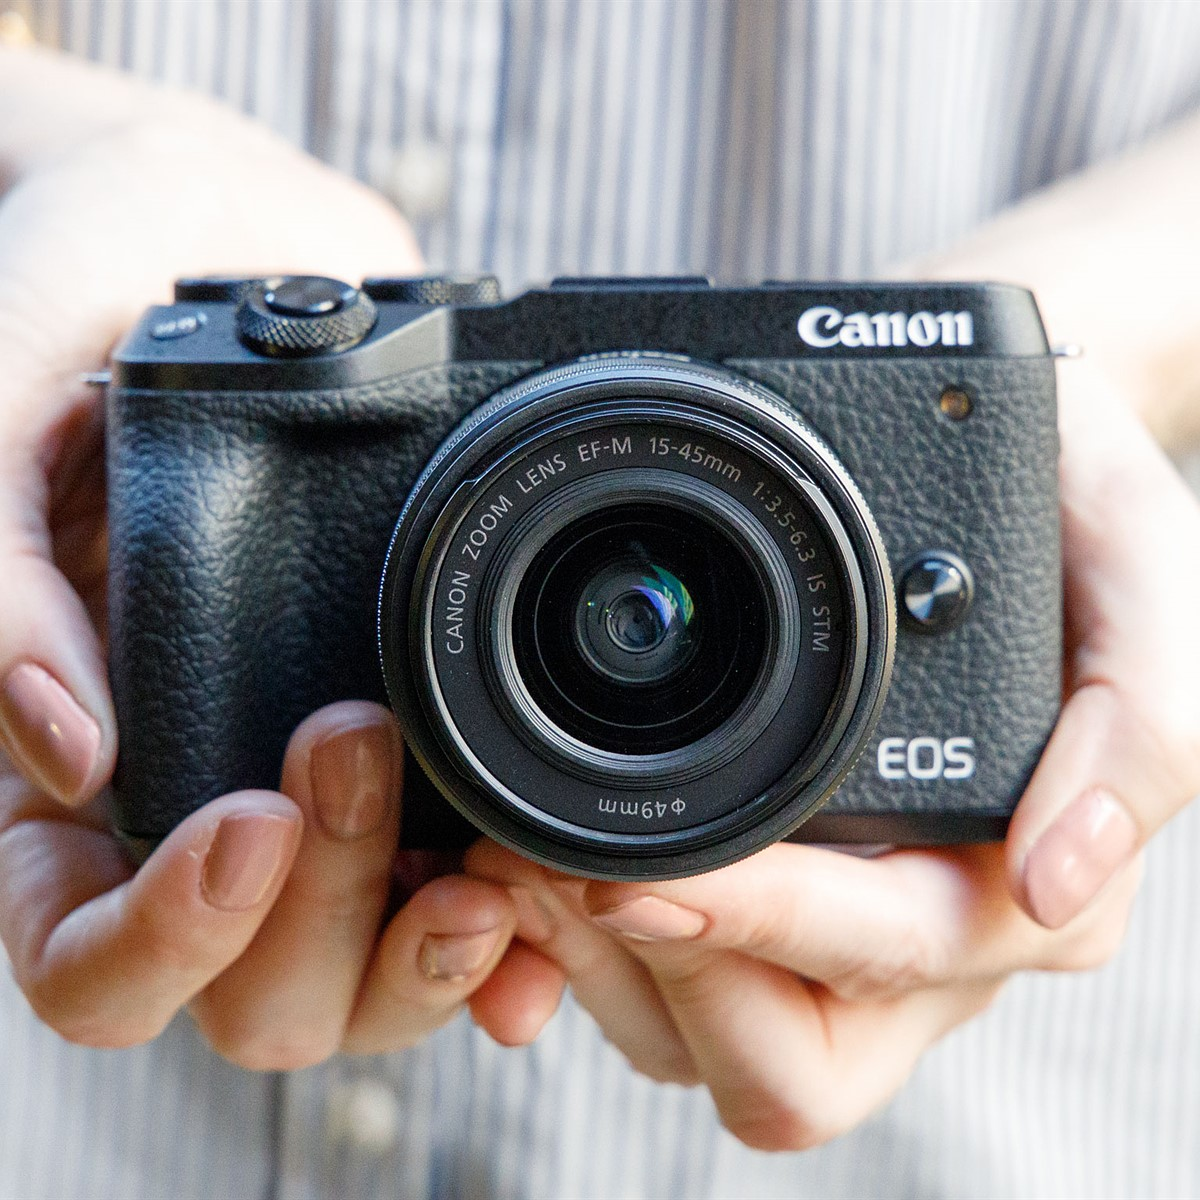 Hands on with the Canon EOS M6 II: Digital Photography Review